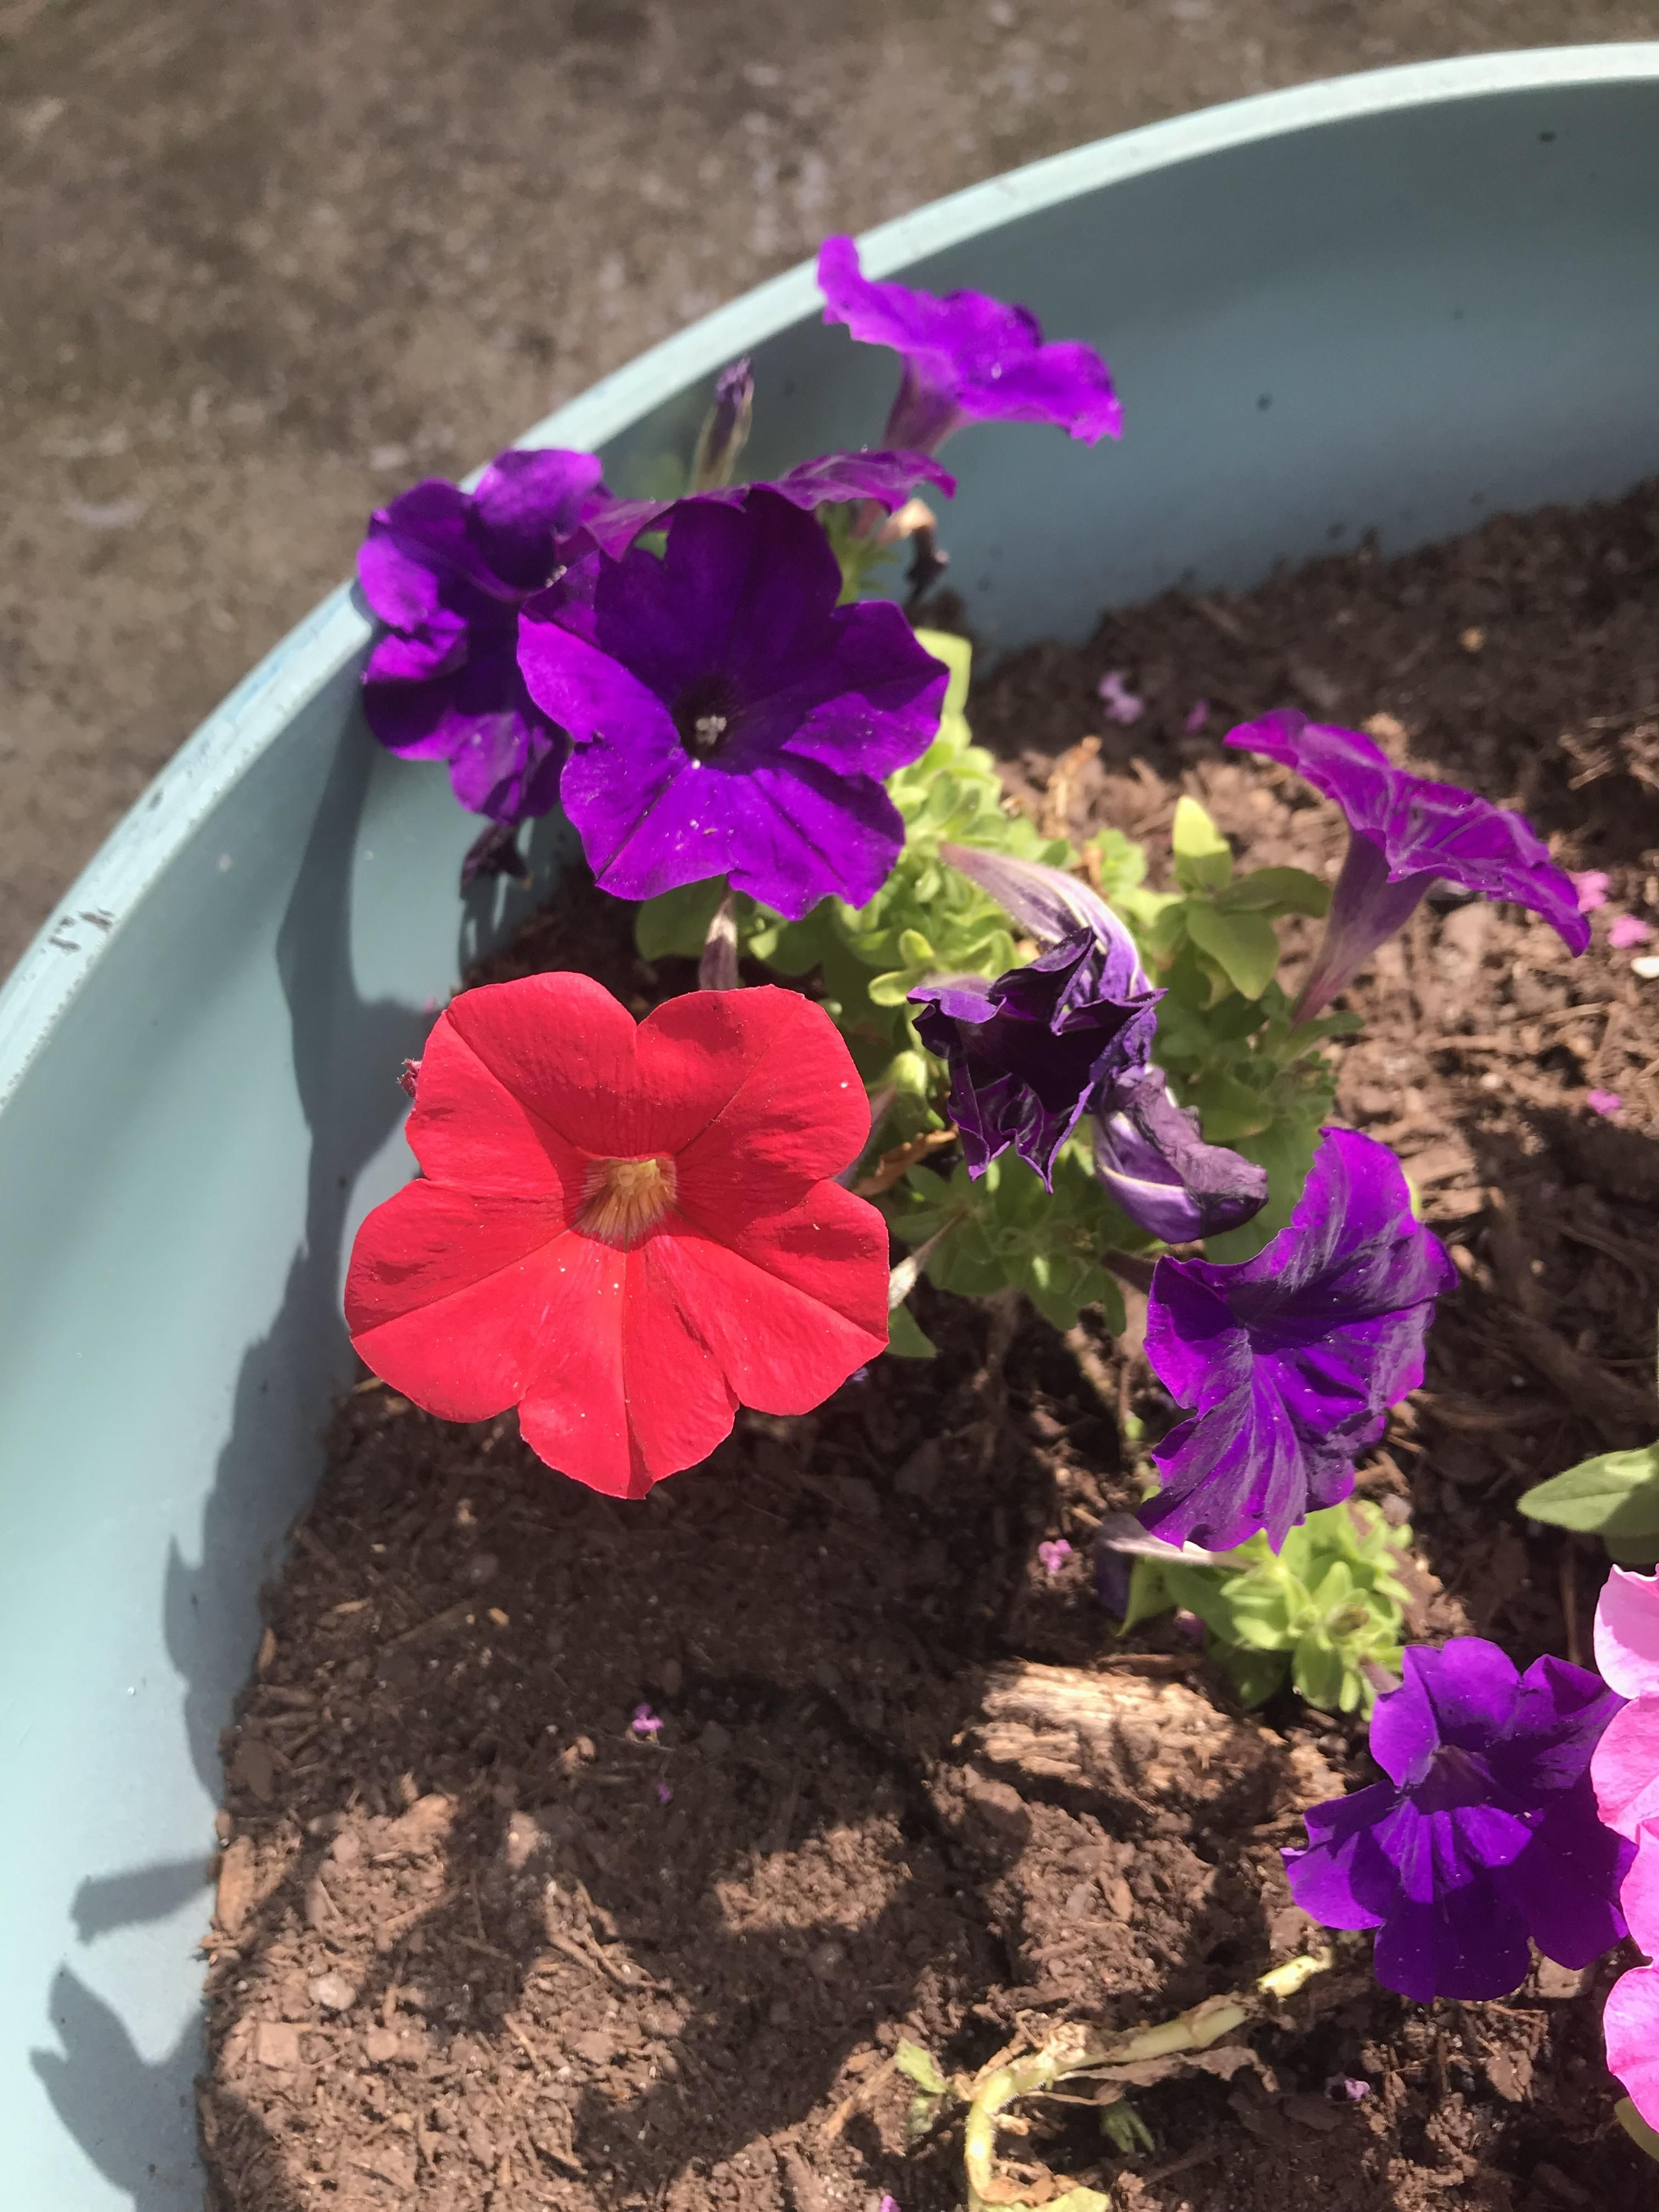 One red petunia snuck in with the purple ones! gardening